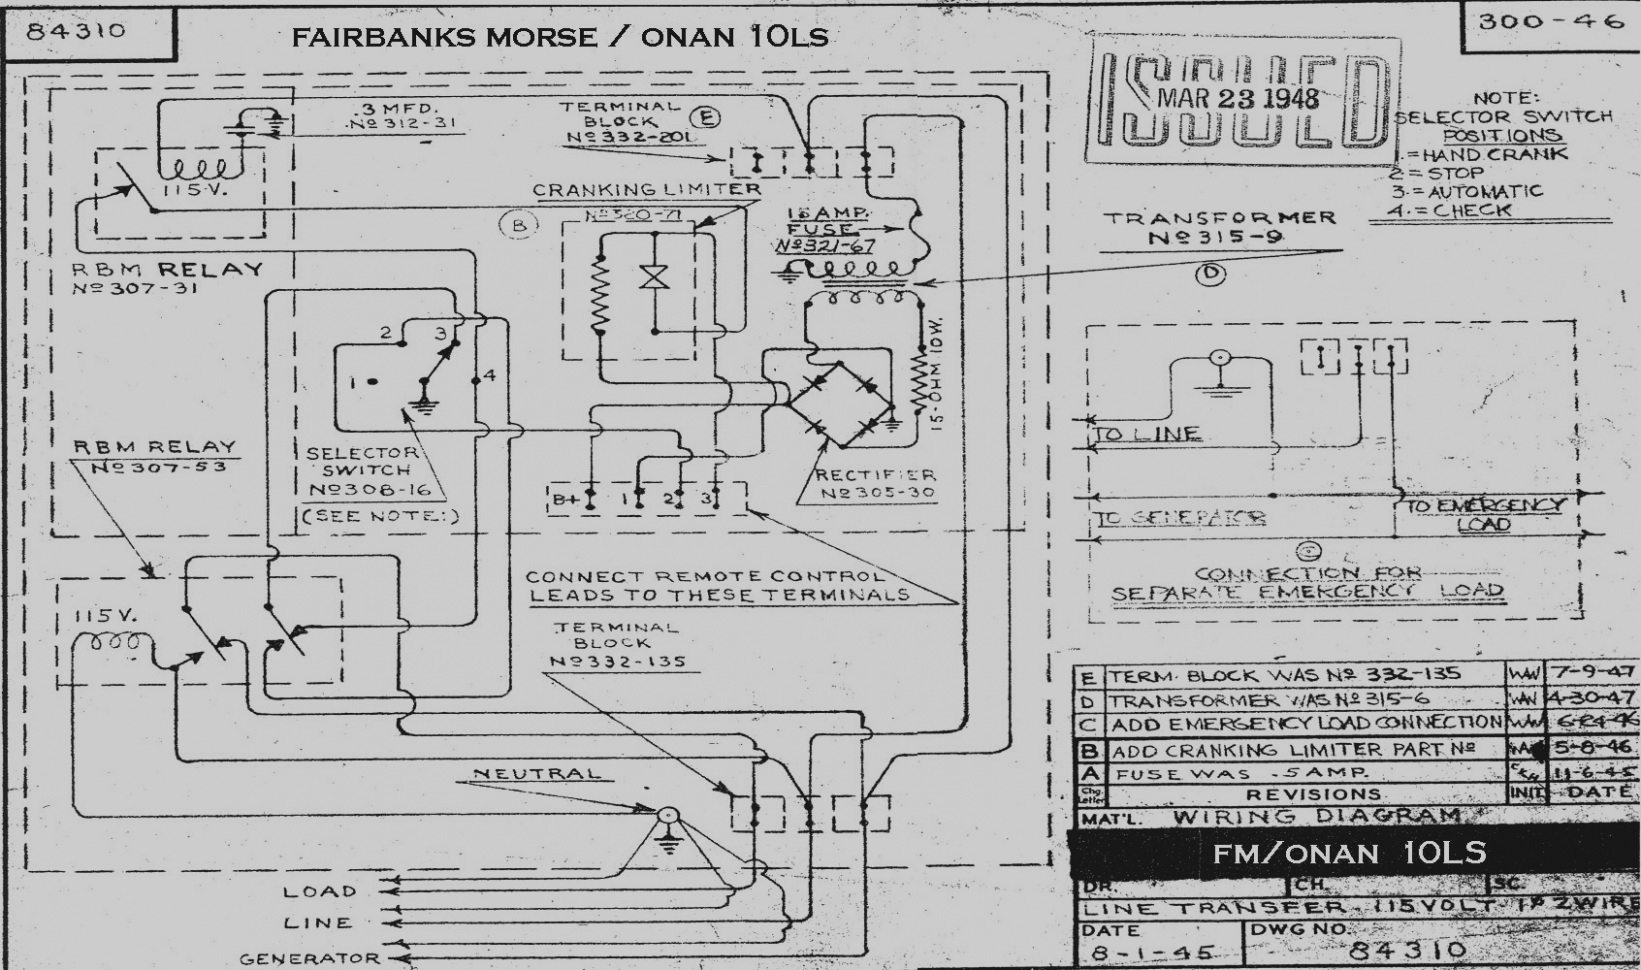 onan generator ignition wiring wiring diagram electricity basics rh casamagdalena us cummins generator circuit diagram cummins diesel engine wiring diagram